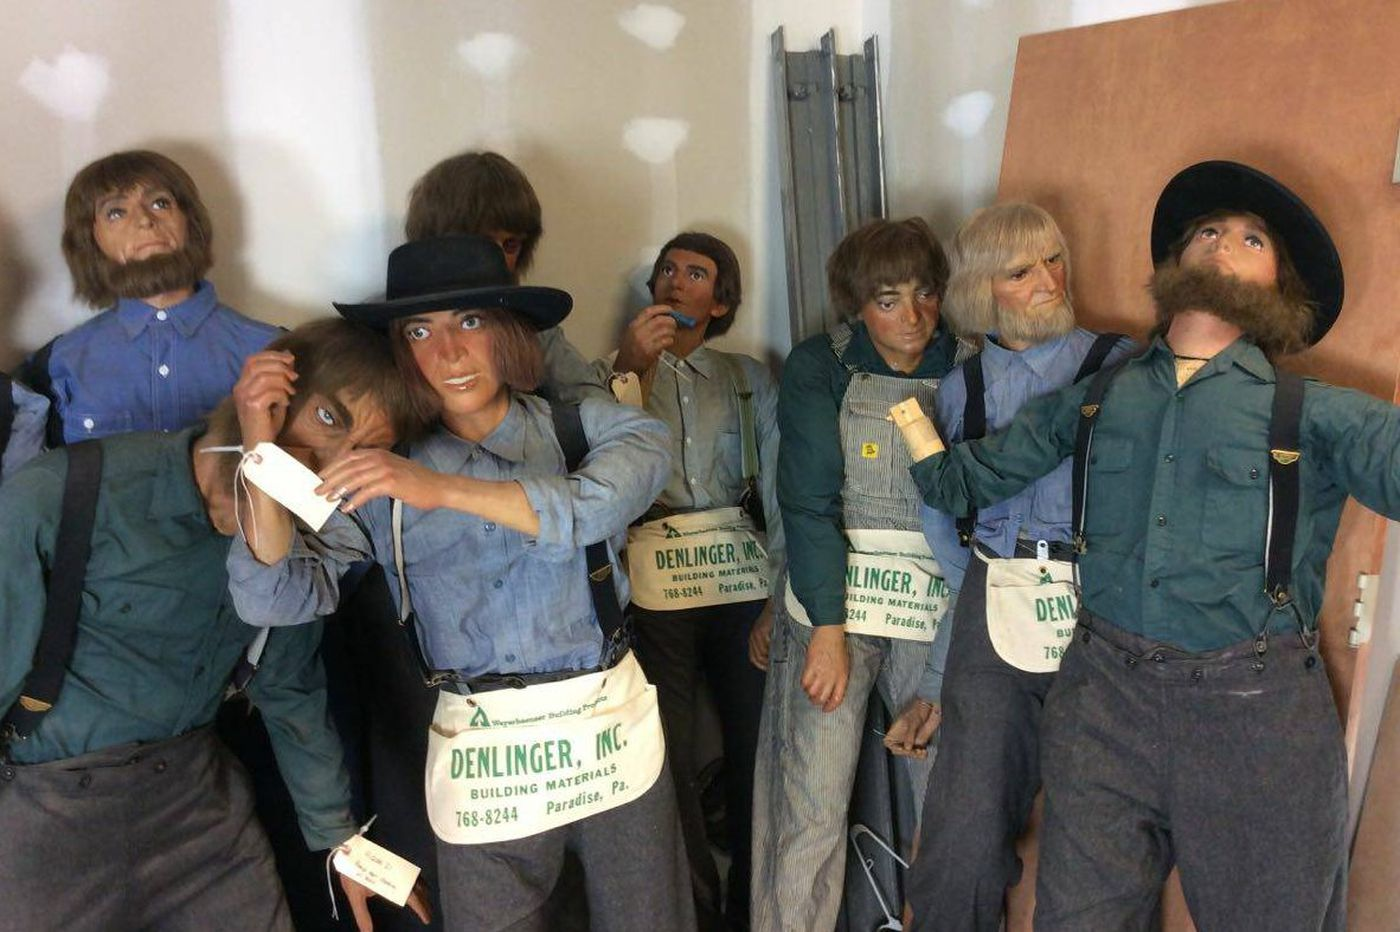 For sale: 40 life-size Amish figures from Lancaster County